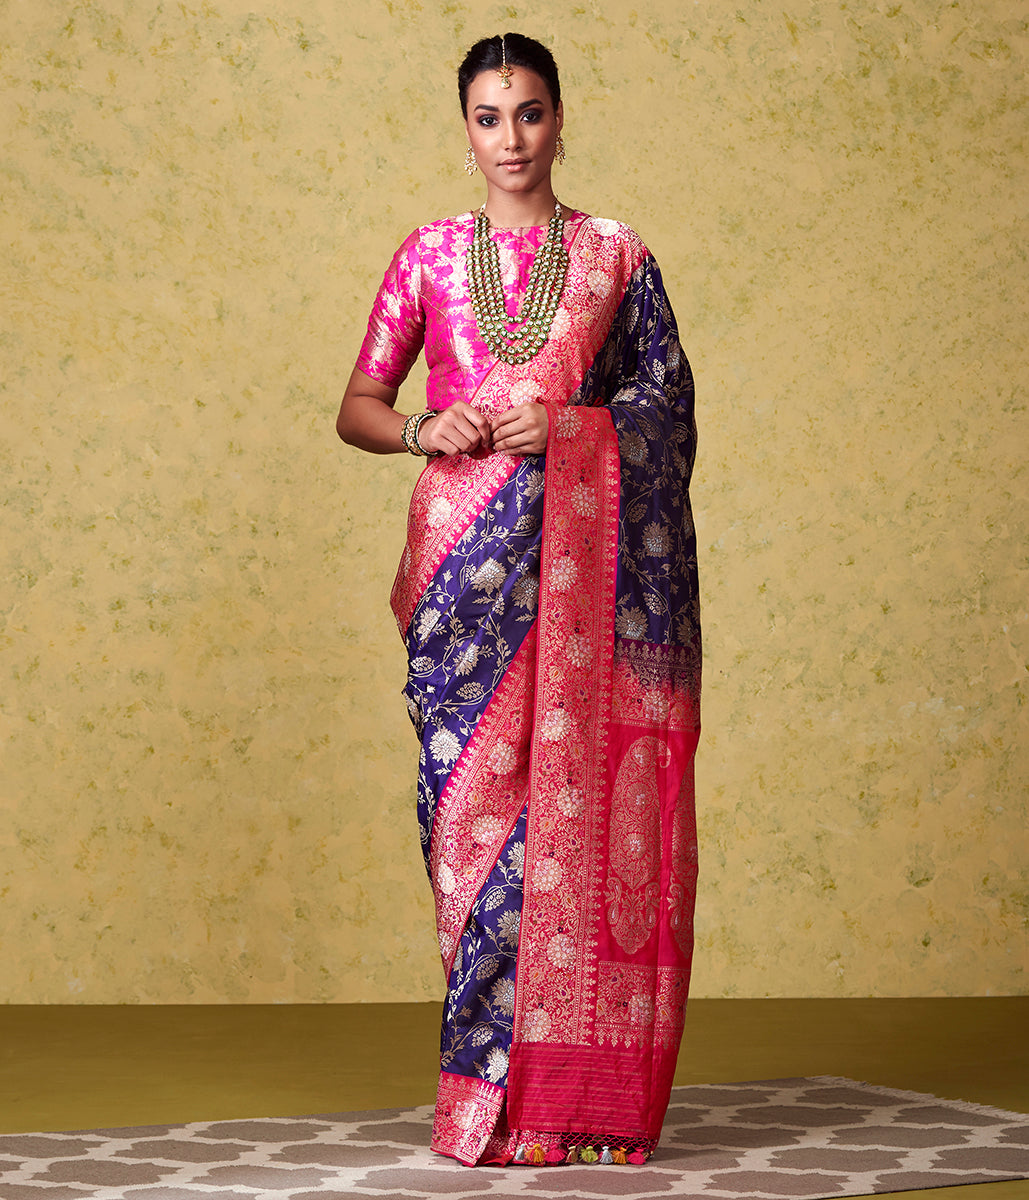 Handwoven Royal Blue Banarasi Jangla with Bright Pink Border and Pallu